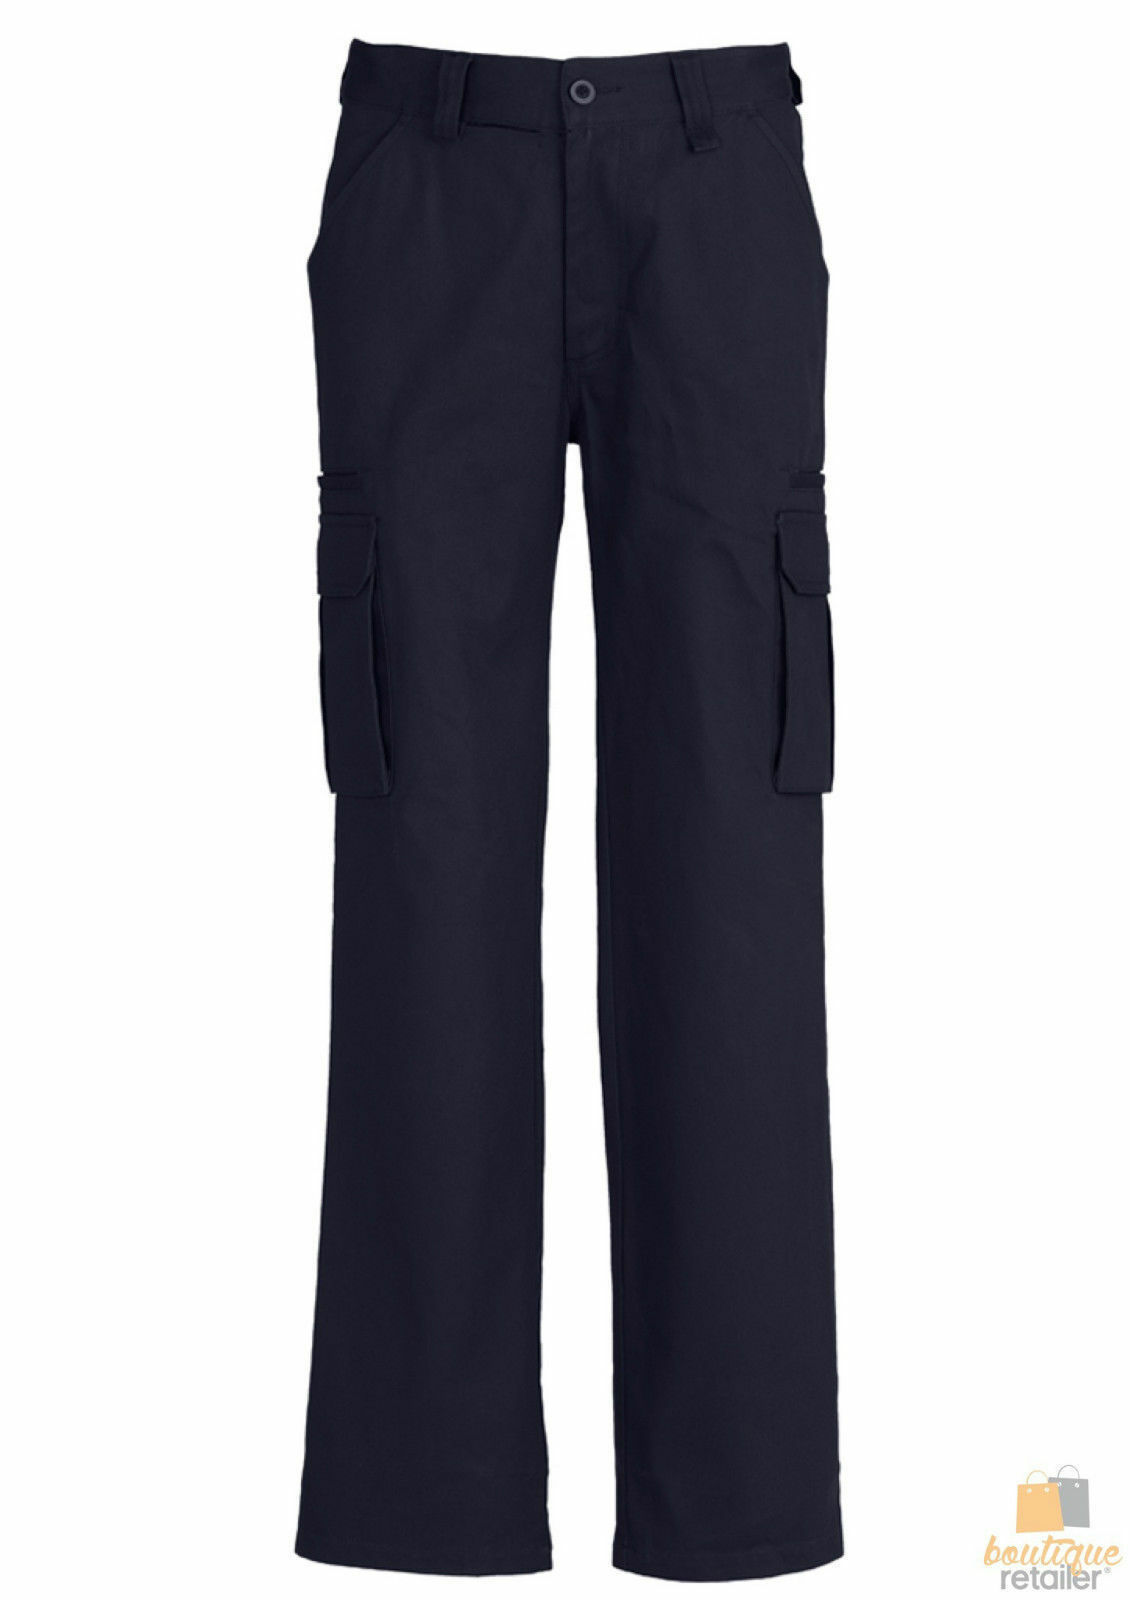 Mens-CARGO-PANTS-Work-Wear-Trousers-100-COTTON-Tradie-Pockets-Military-310gsm thumbnail 16